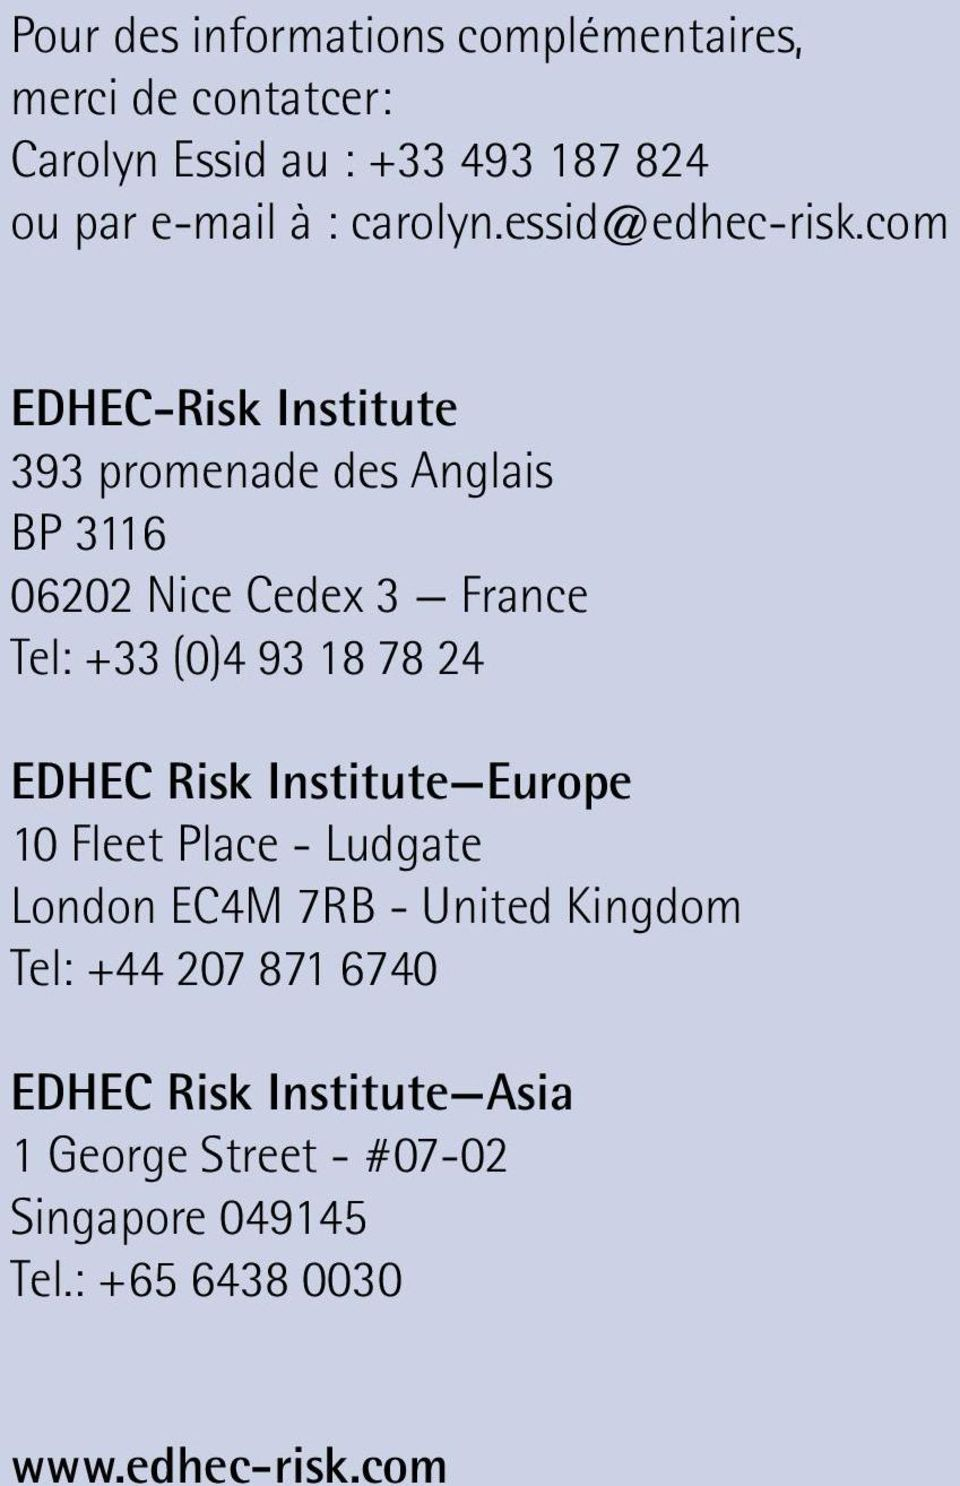 com EDHEC-Risk Institute 393 promenade des Anglais BP 3116 06202 Nice Cedex 3 France Tel: +33 (0)4 93 18 78 24